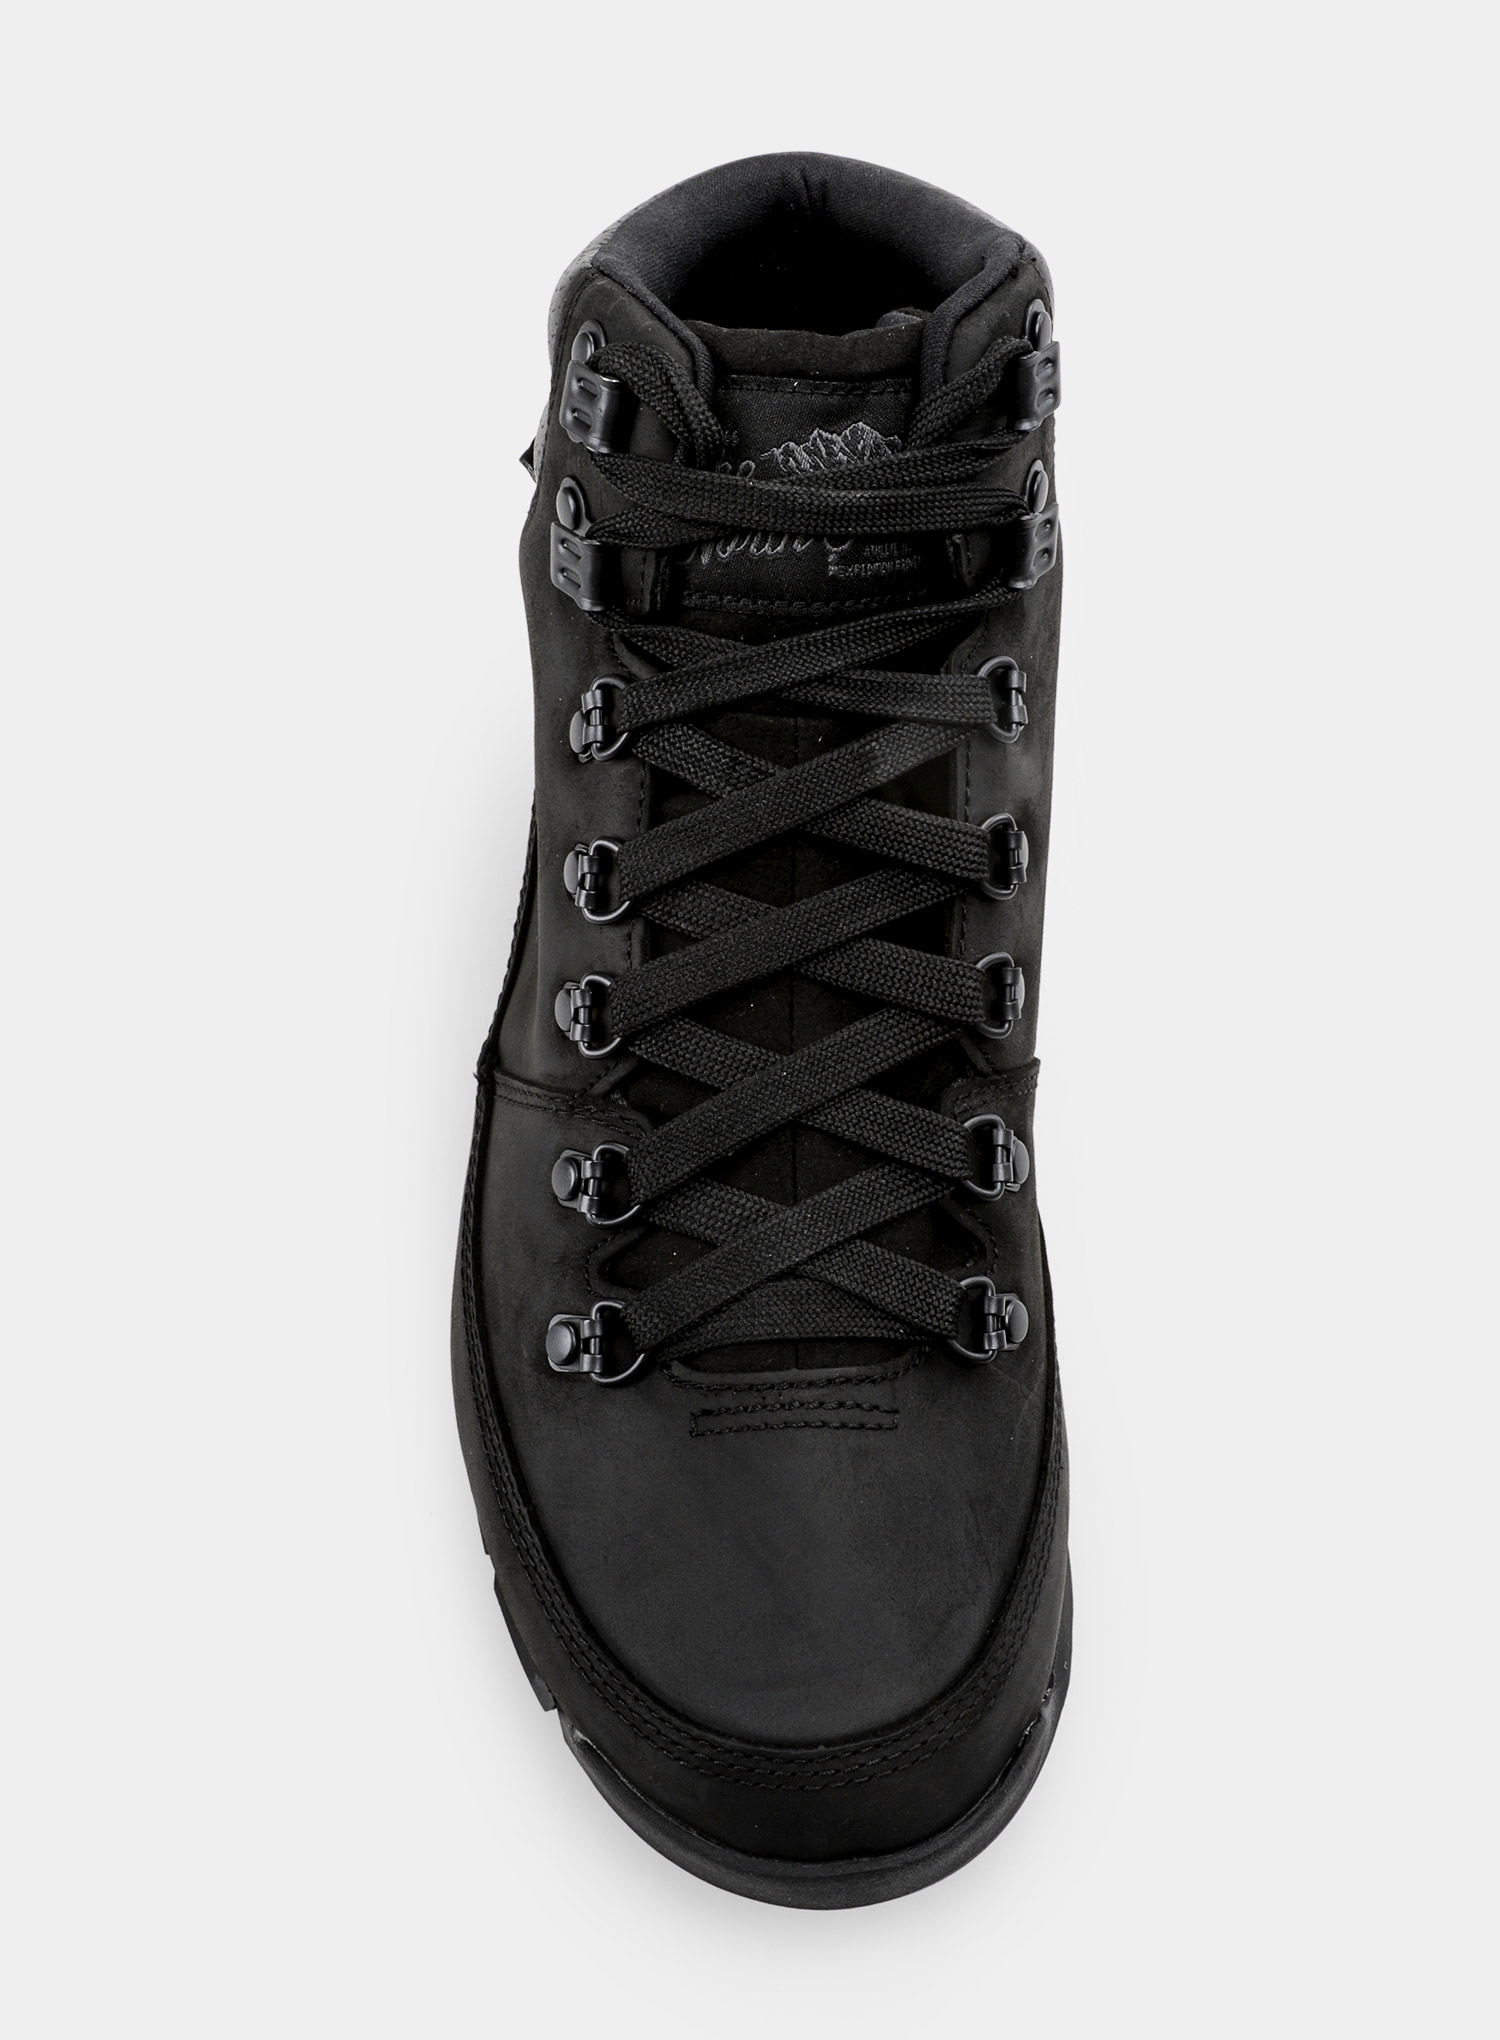 Buty The North Face Back To Berkeley Redux LTR - tnf black/tnf black - zdjęcie nr. 5